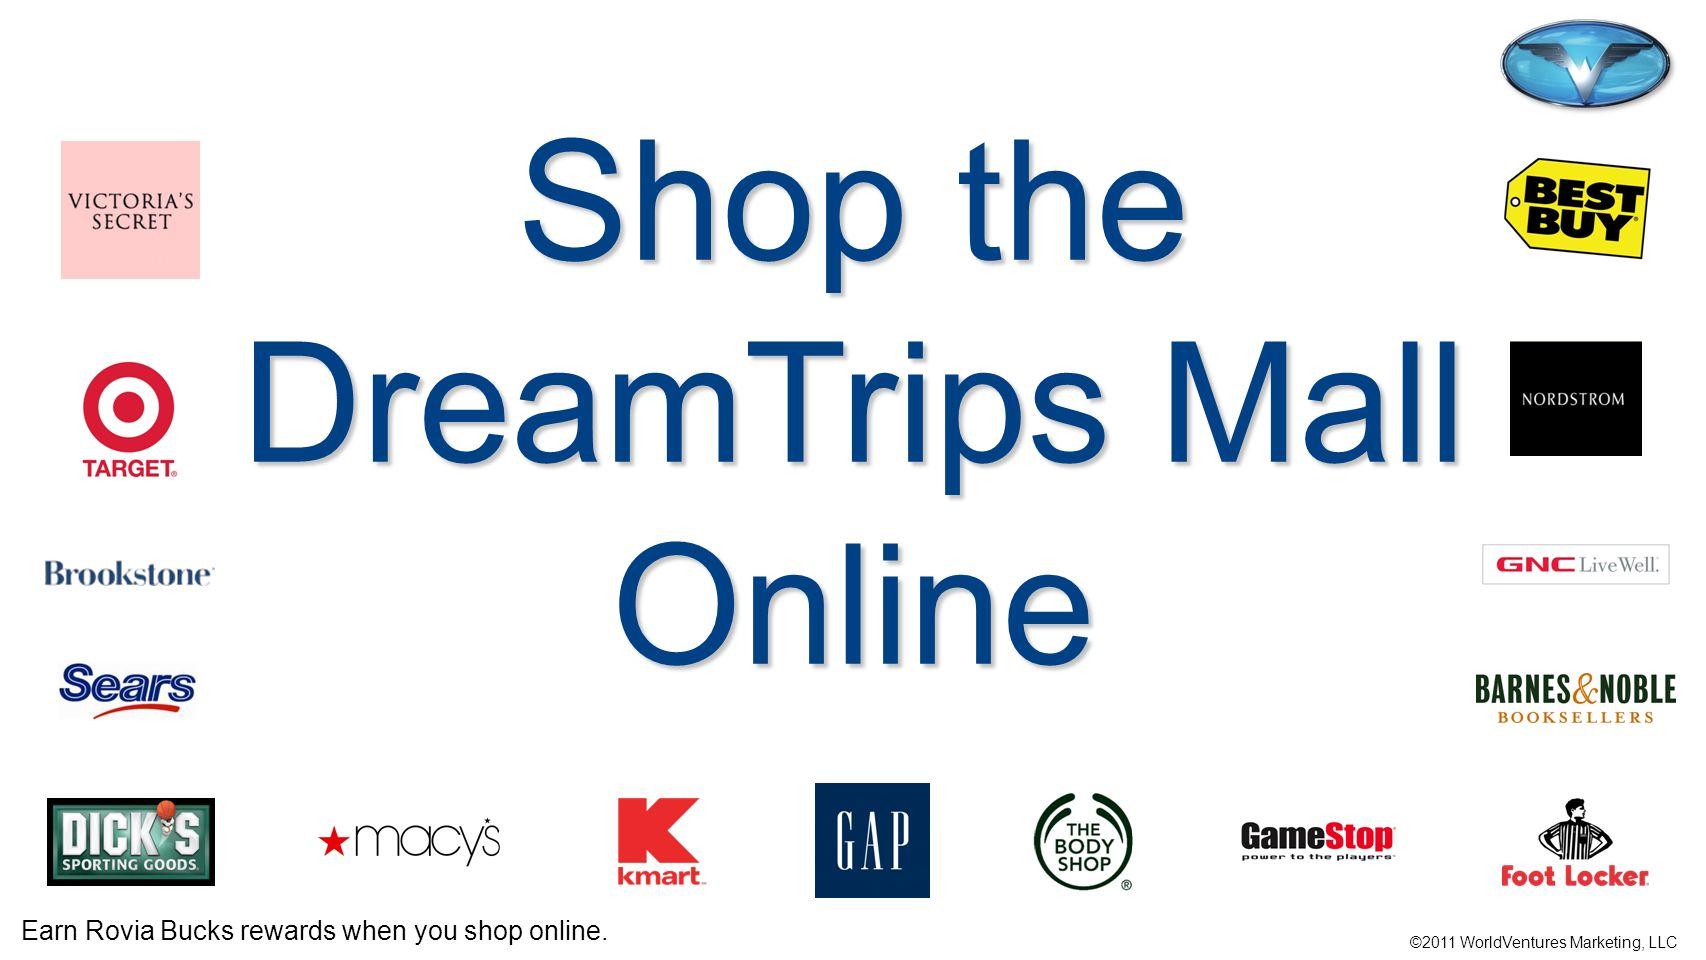 Shop the DreamTrips Mall Online